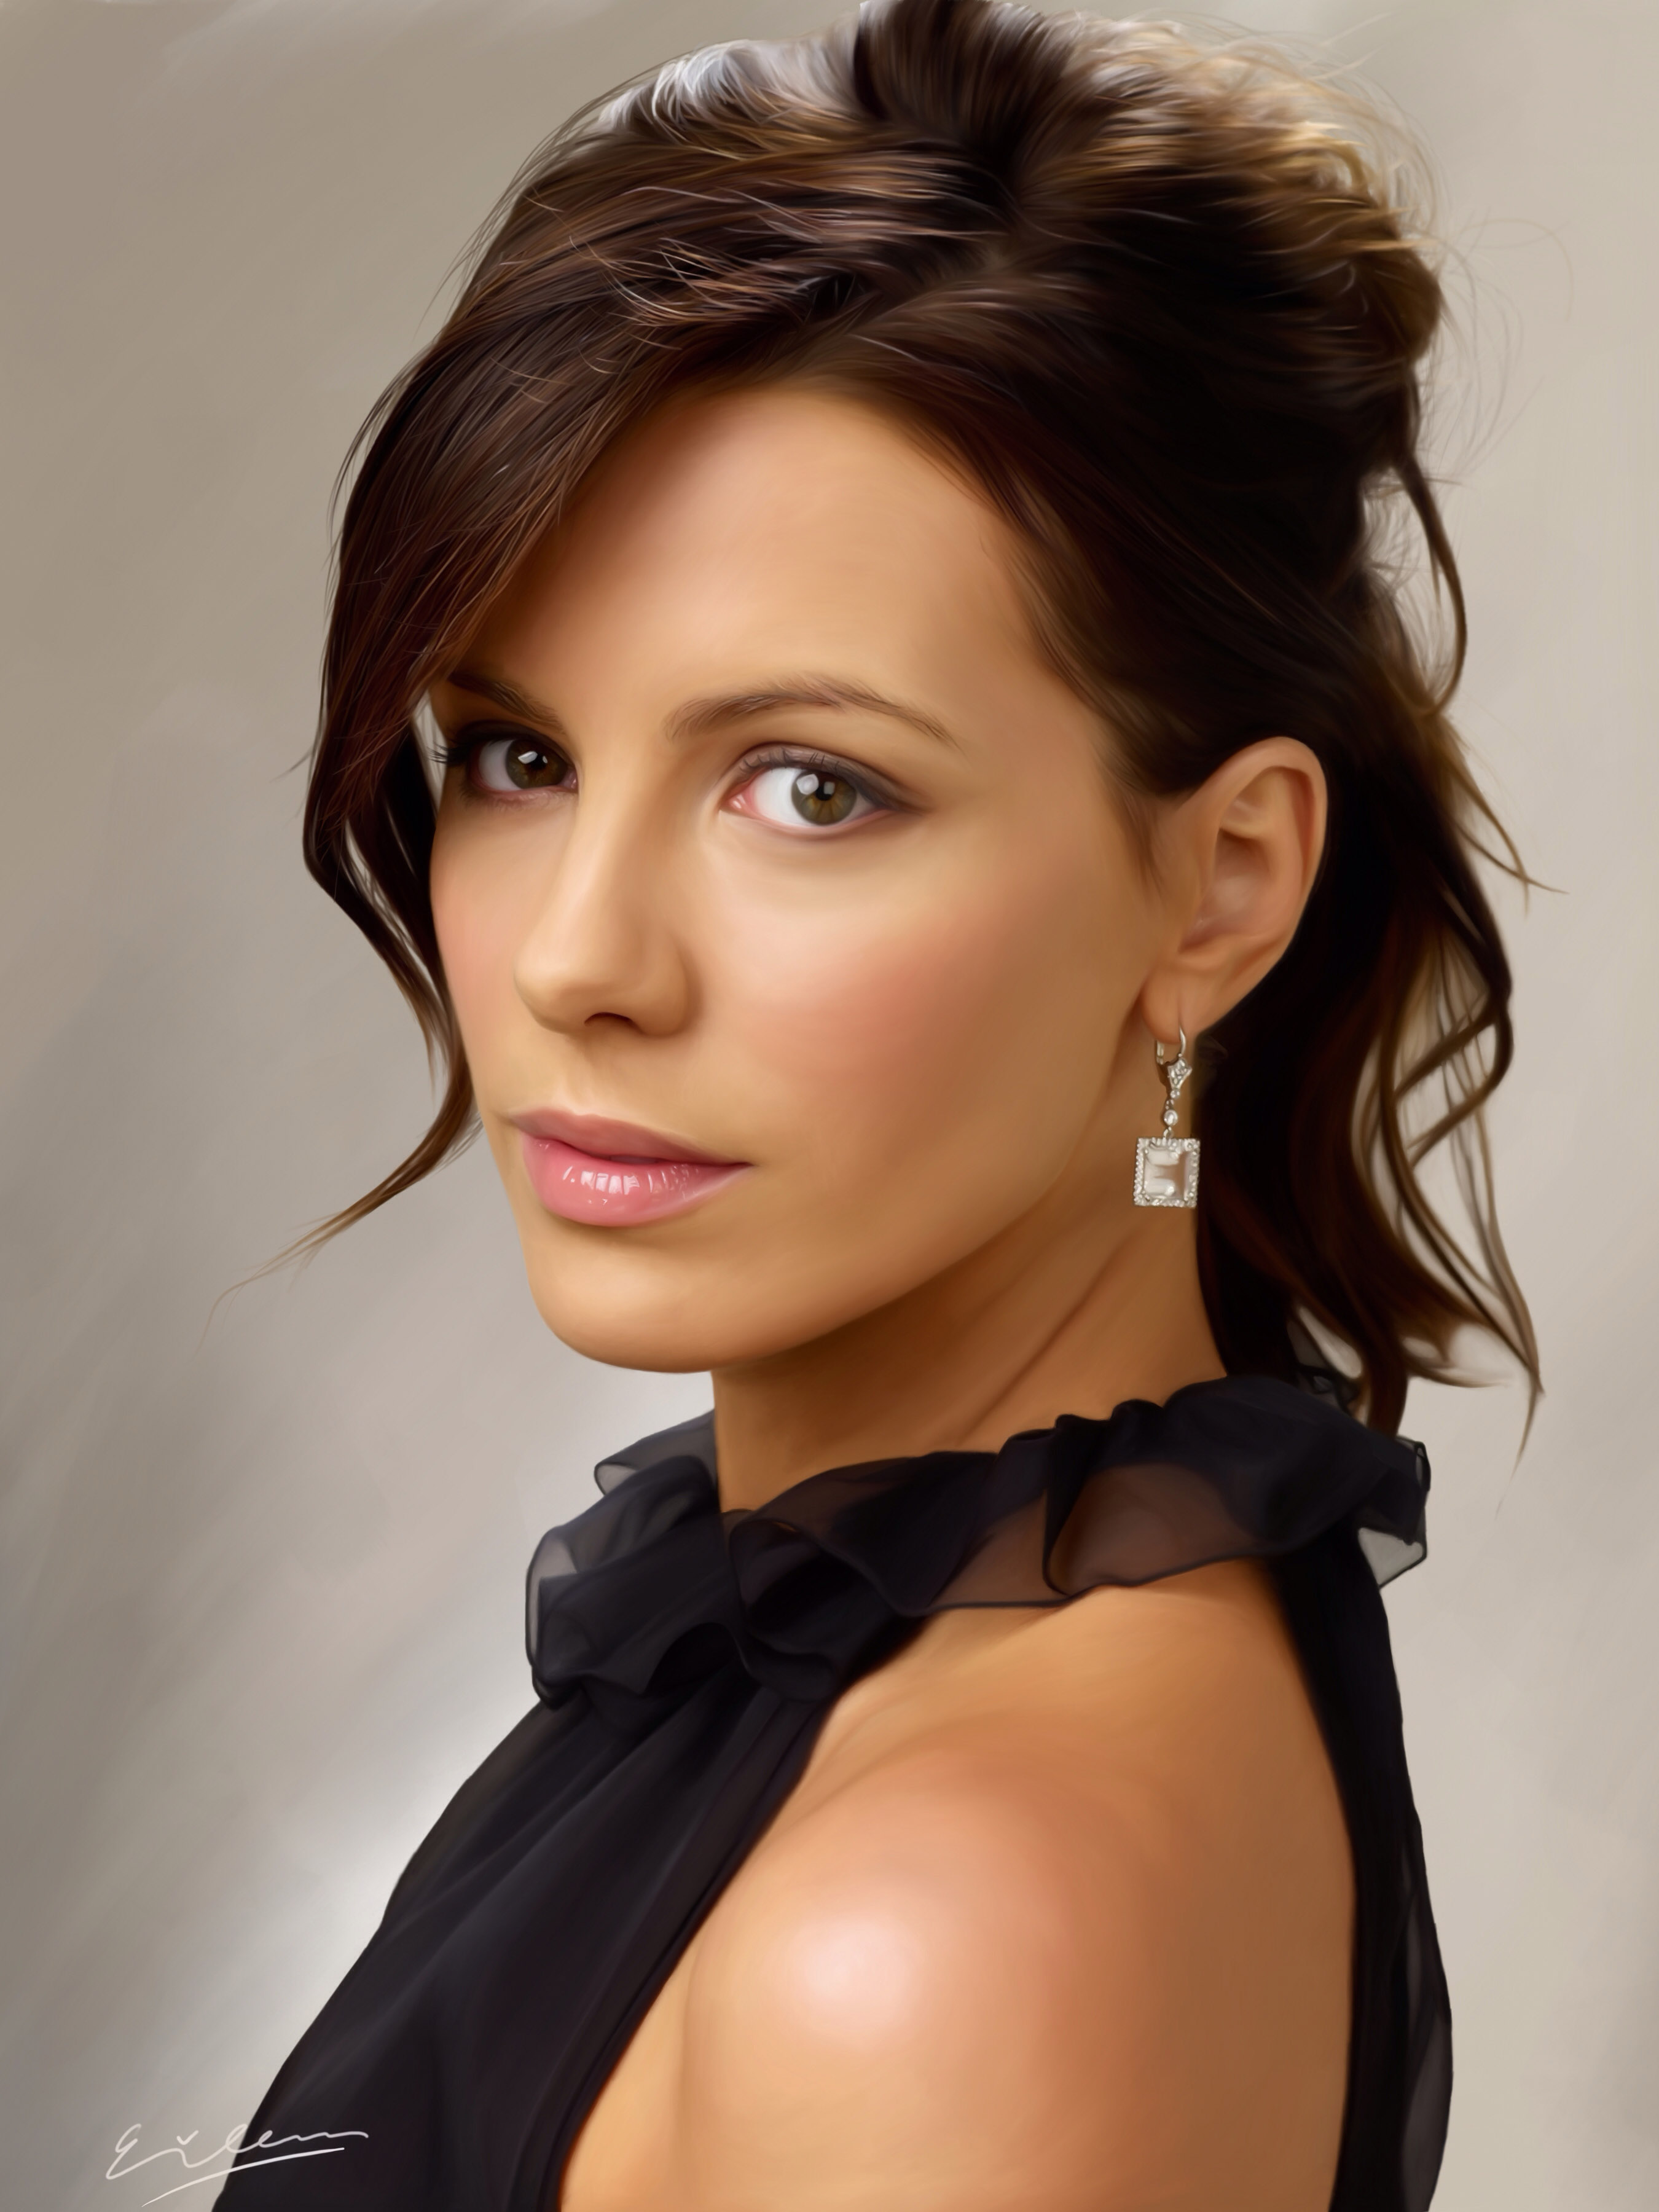 This is a FICTIONAL PICTURE of a REAL BEAUTIFUL WOMAN created by a GENIUS. Digitally Created and Idealized Young Kate Beckinsale as LADY LIBERTY - Magic Painting by Eileen Irma (https://www.deviantart.com/eileenirma/art/Kate-Beckinsale-110115548) - There is NOTHING WRONG with this picture. This is a fictional aesthetically idealized beautiful and CONFIDENT young woman dressing as she pleases. Note the brown hair and brown eyes and exposed shoulder. She is CONFIDENT. She WILL DRESS HOWEVER She PLEASES.